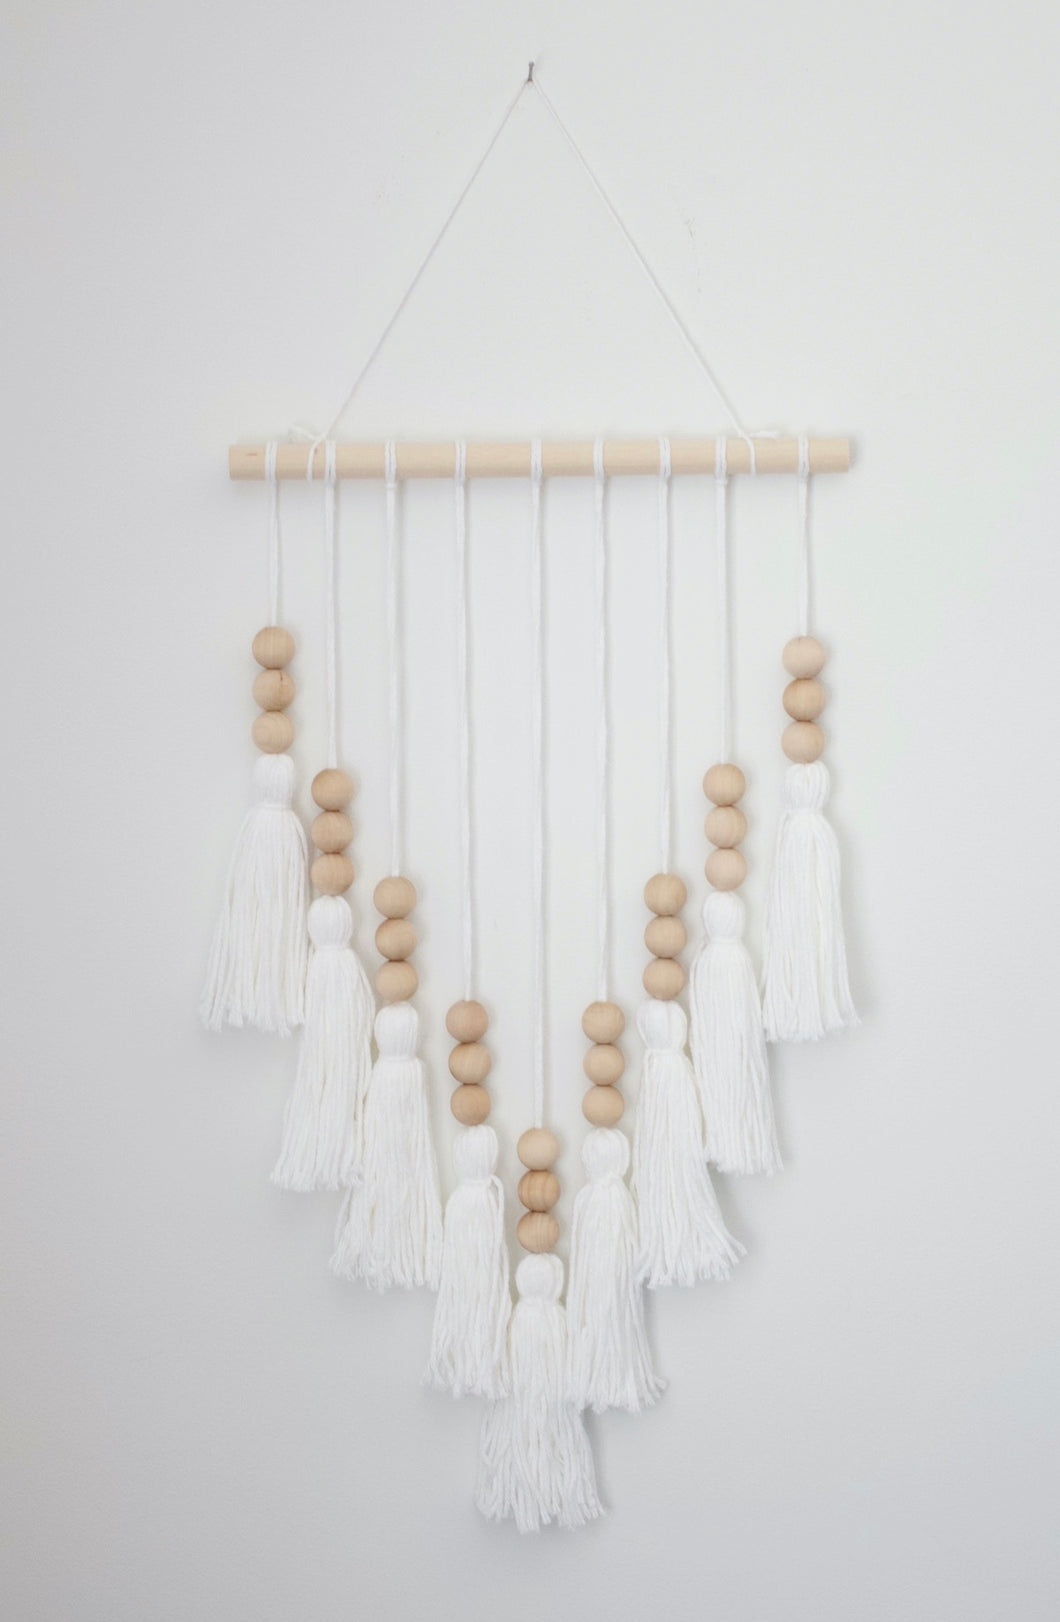 Unwind - Craft & Charcuterie Kit (Tassel Wall Hanging)